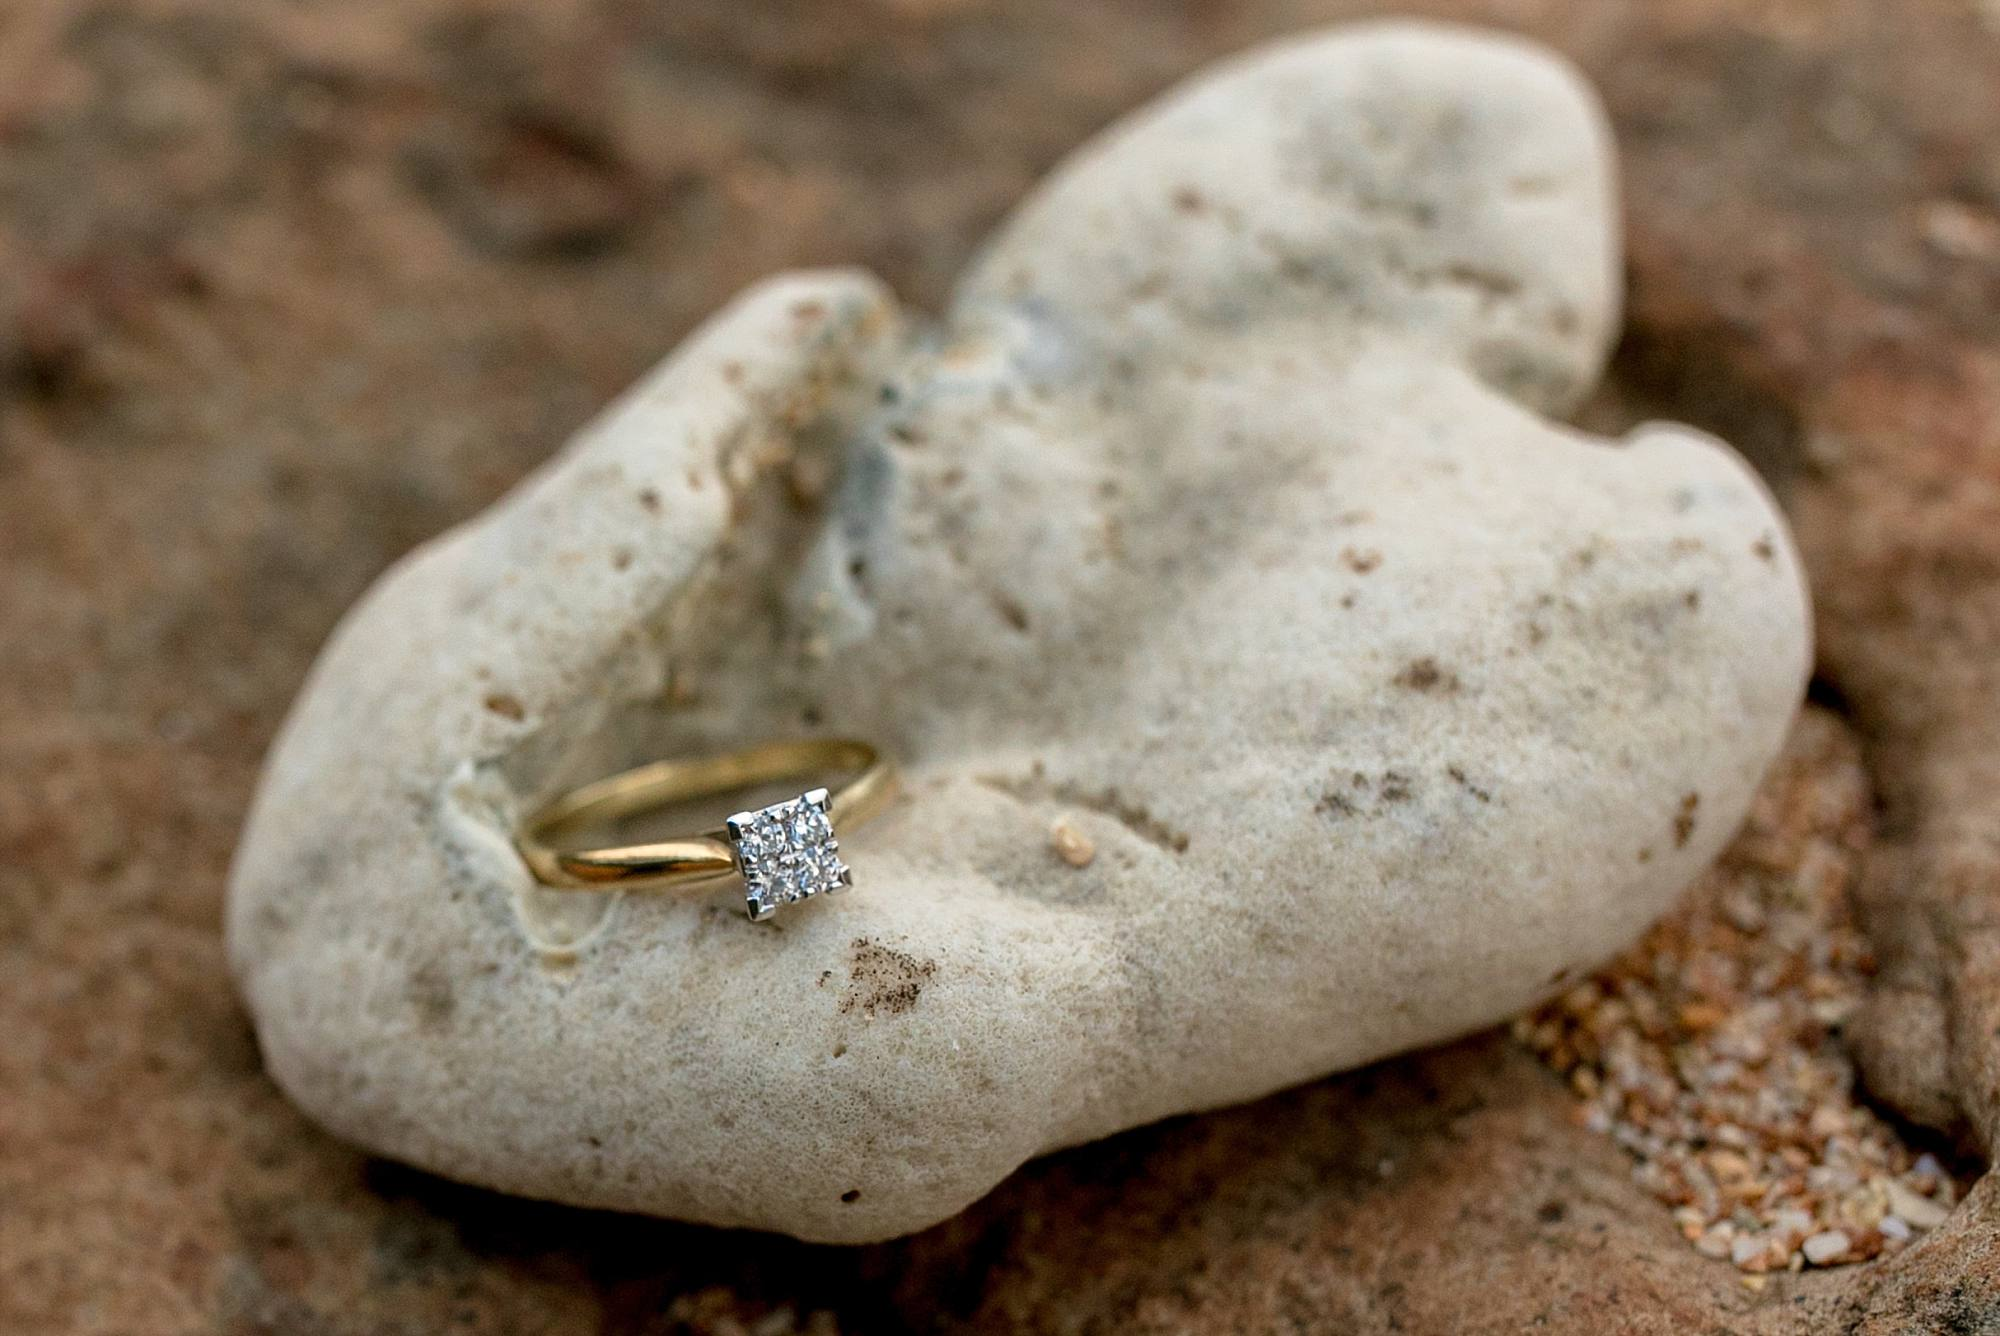 princess cut diamond engagement ring with gold band sitting atop beach rock